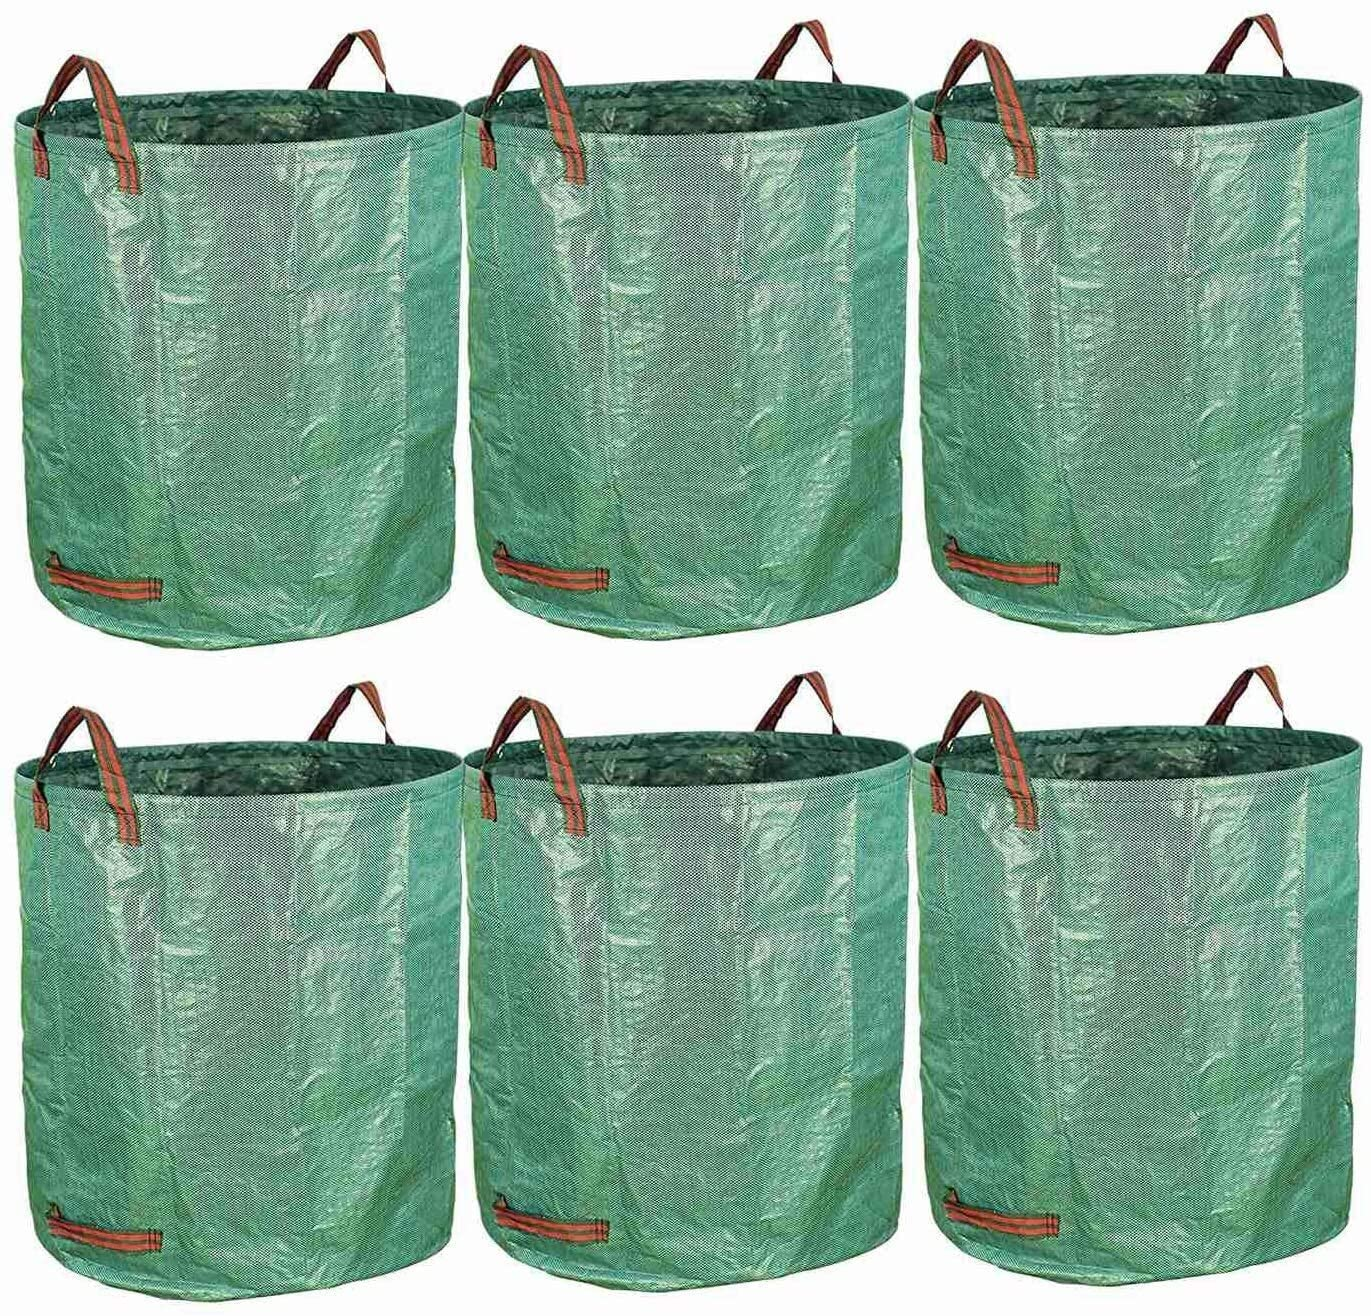 Zxcv 6-Pack 72 Gallon Bags - Reusable Heavy Duty Gardening Bags, Lawn Pool Garden Leaf Waste Bag